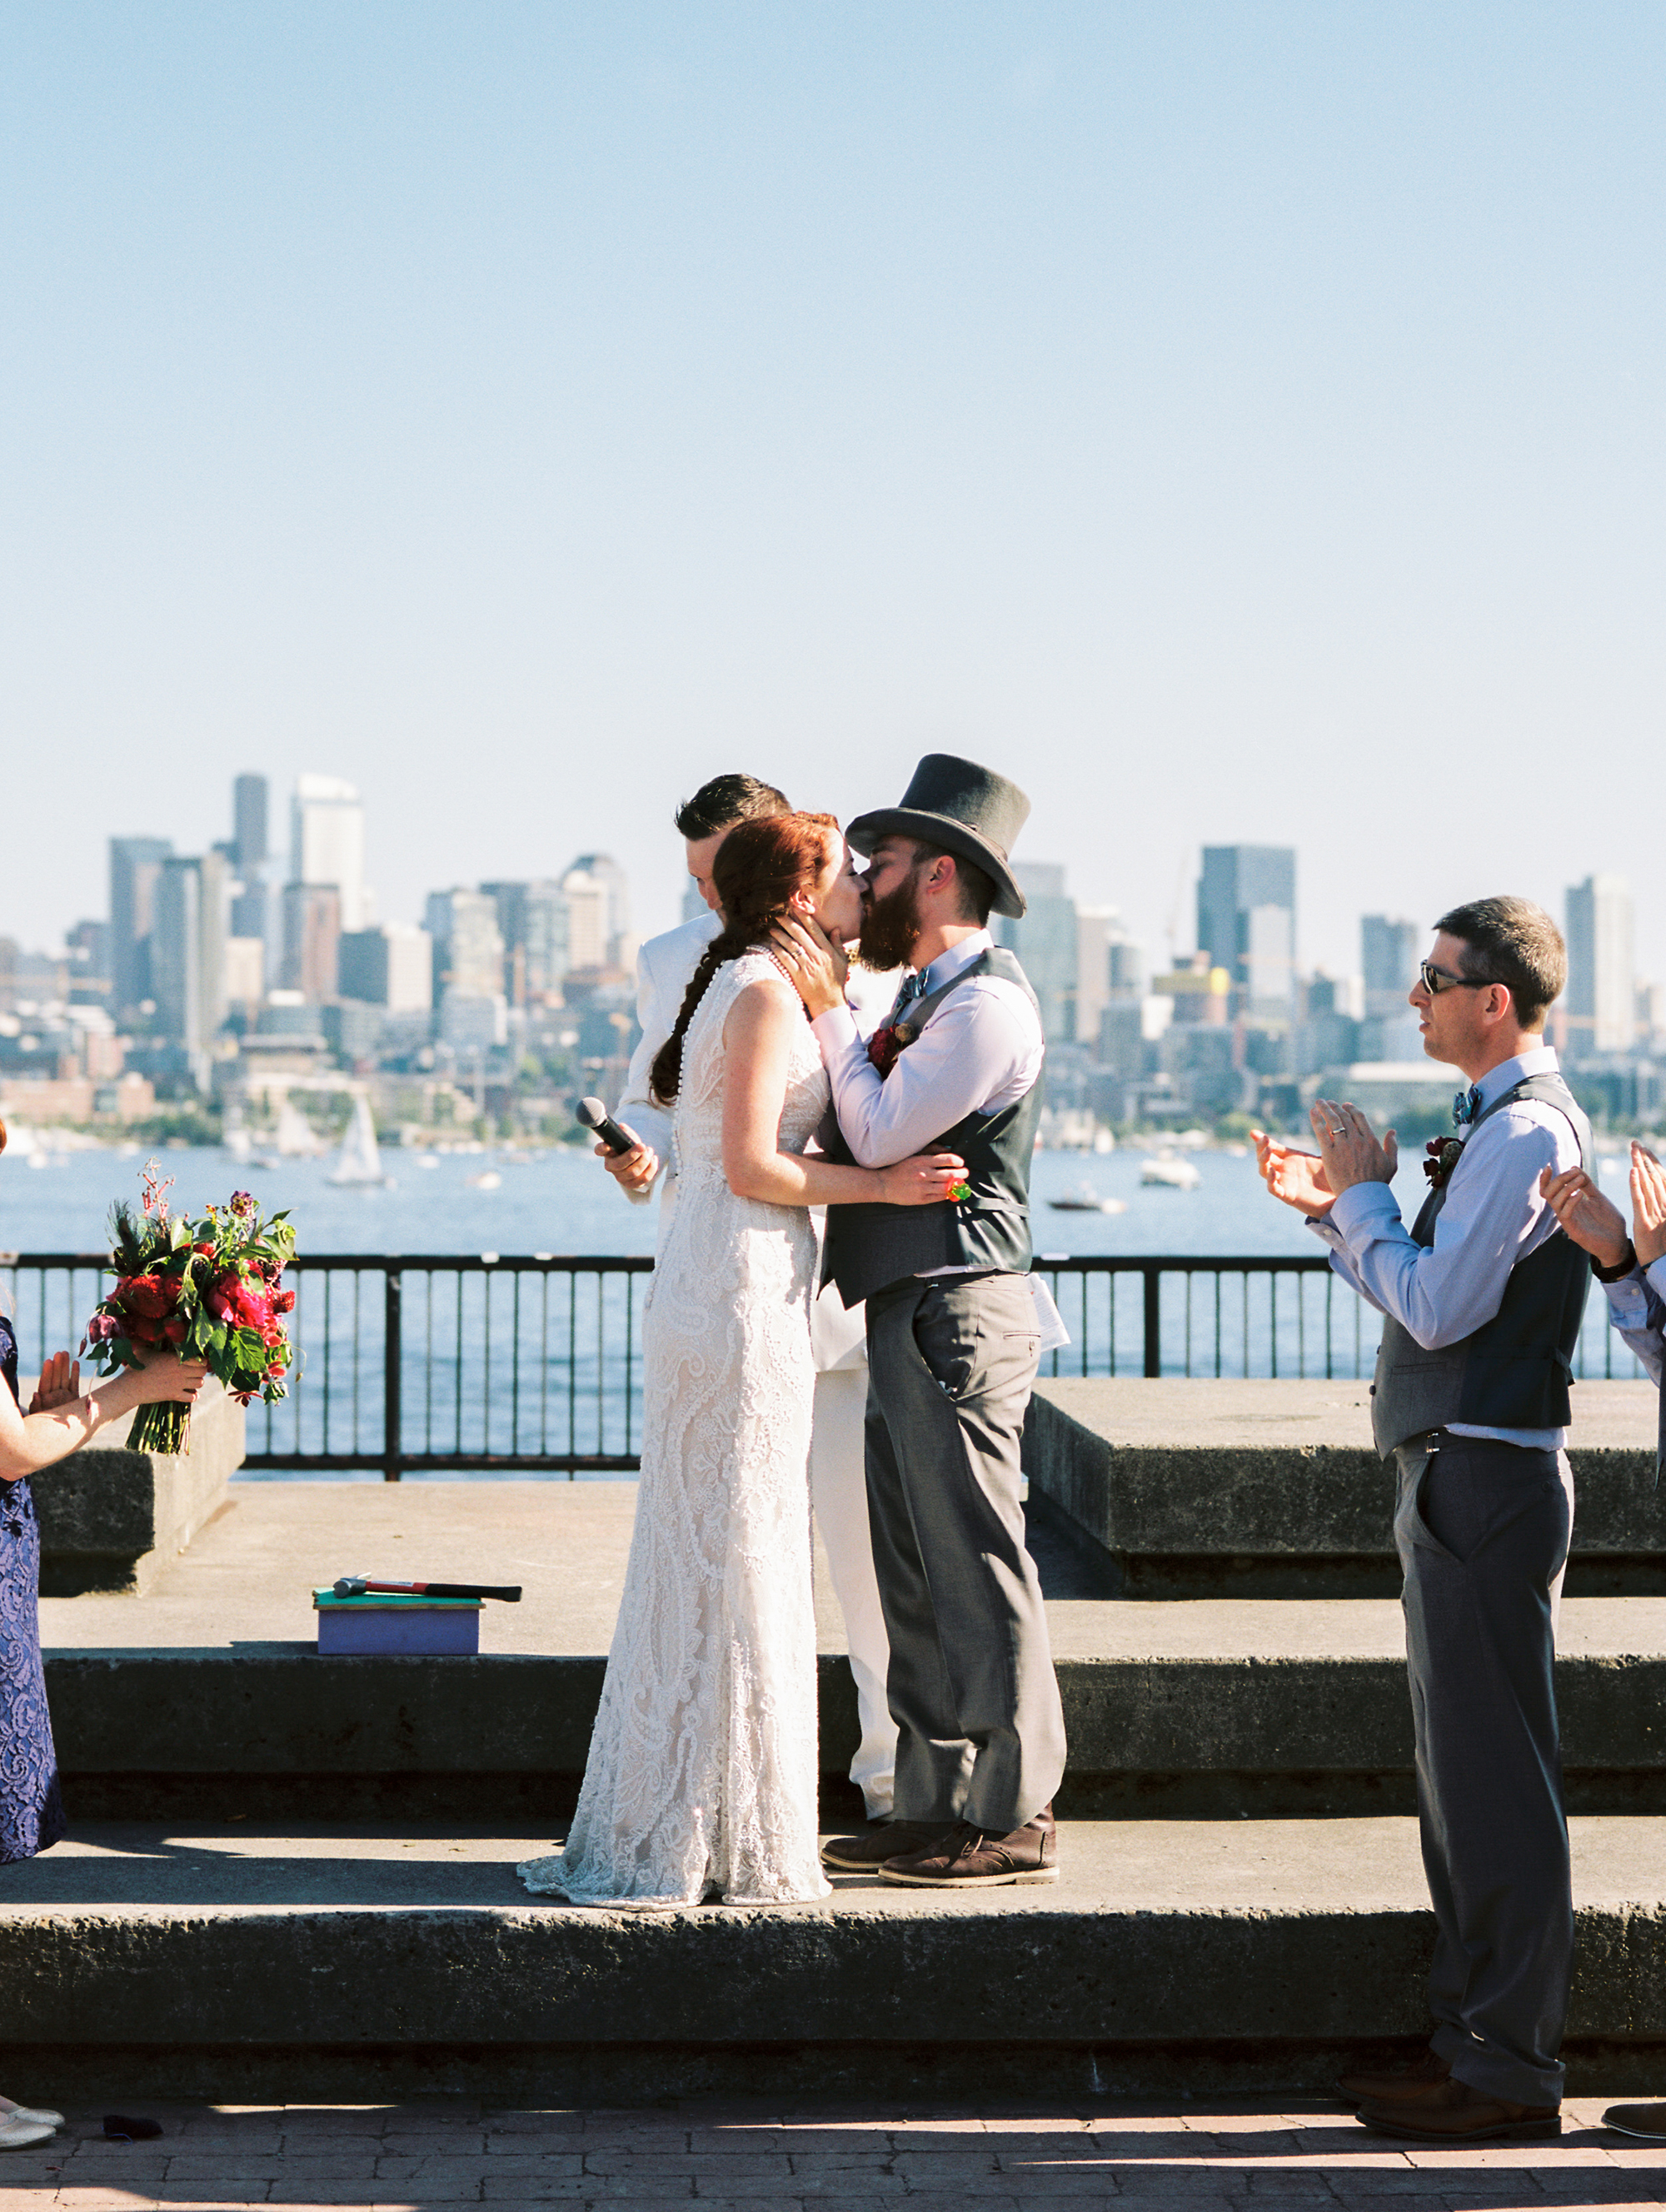 An Eclectic Mardi Gras Inspired Seattle Wedding - The Overwhelmed Bride Wedding Inspiration Ideas Blog